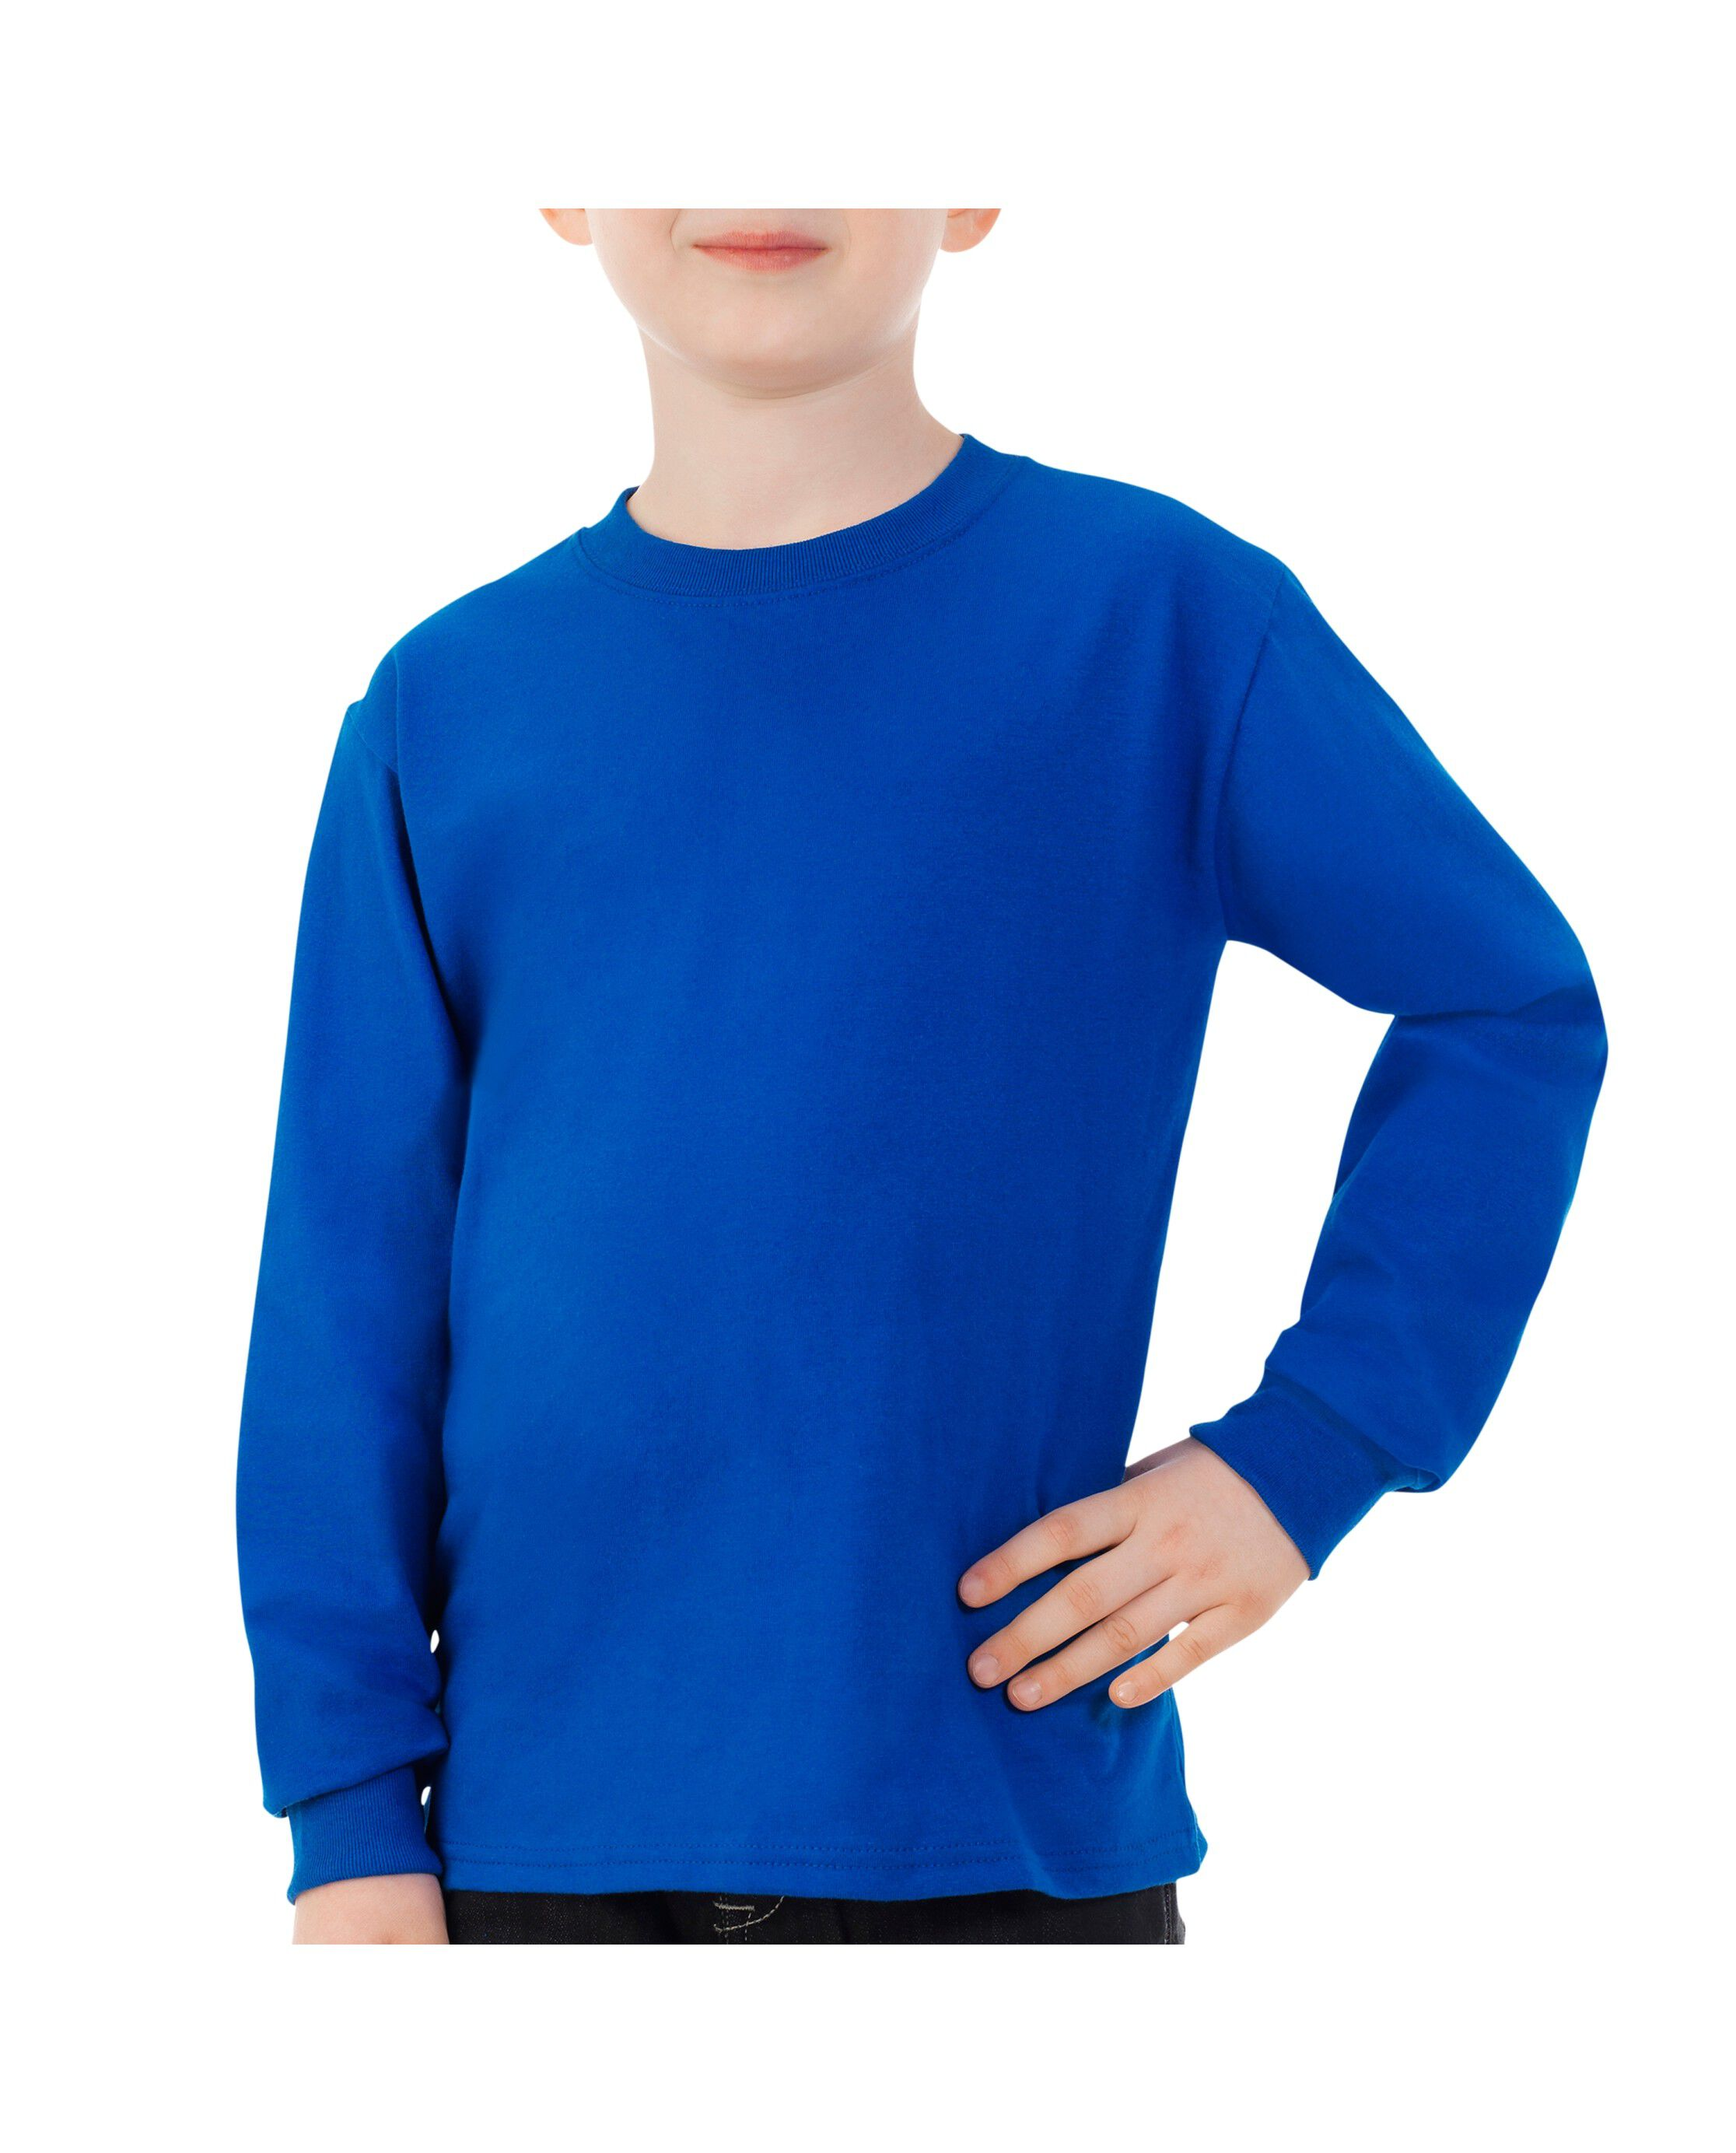 Fruit of the Loom Childrens//Kids Long Sleeve T-Shirt Pack of 2